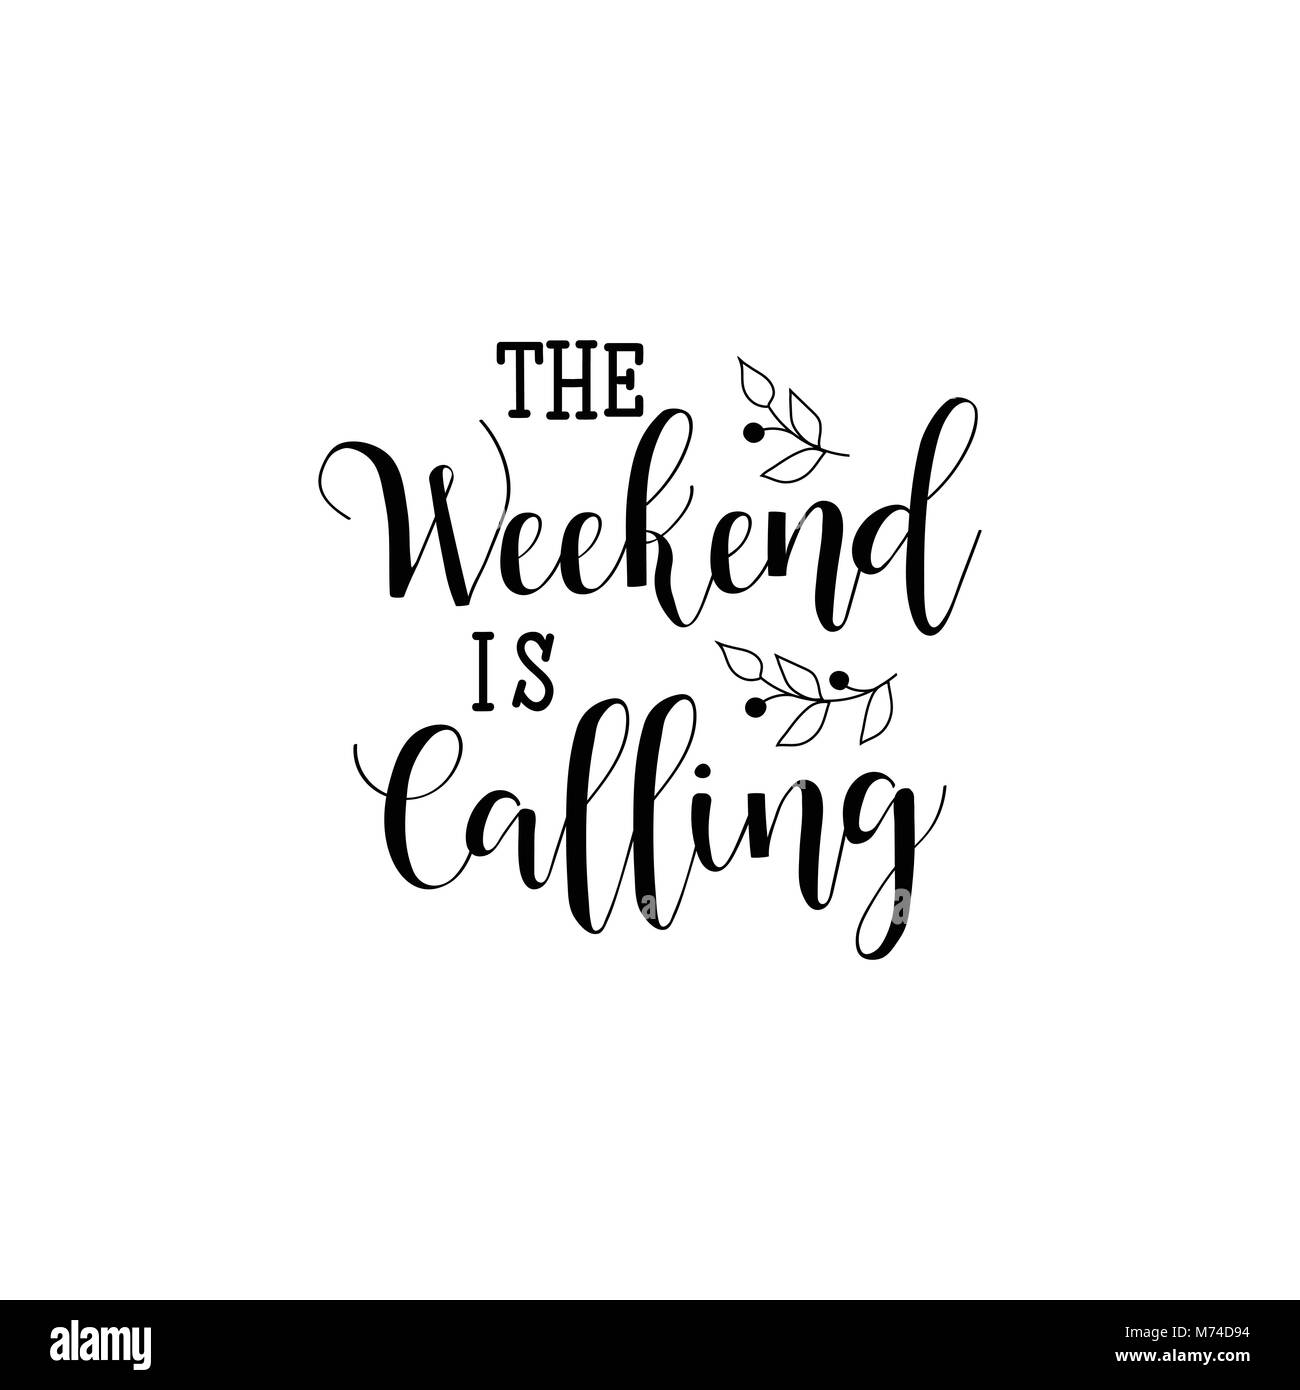 the weekend is calling. lettering. Hand drawn vector illustration. element for flyers, banner, postcards and posters. - Stock Vector